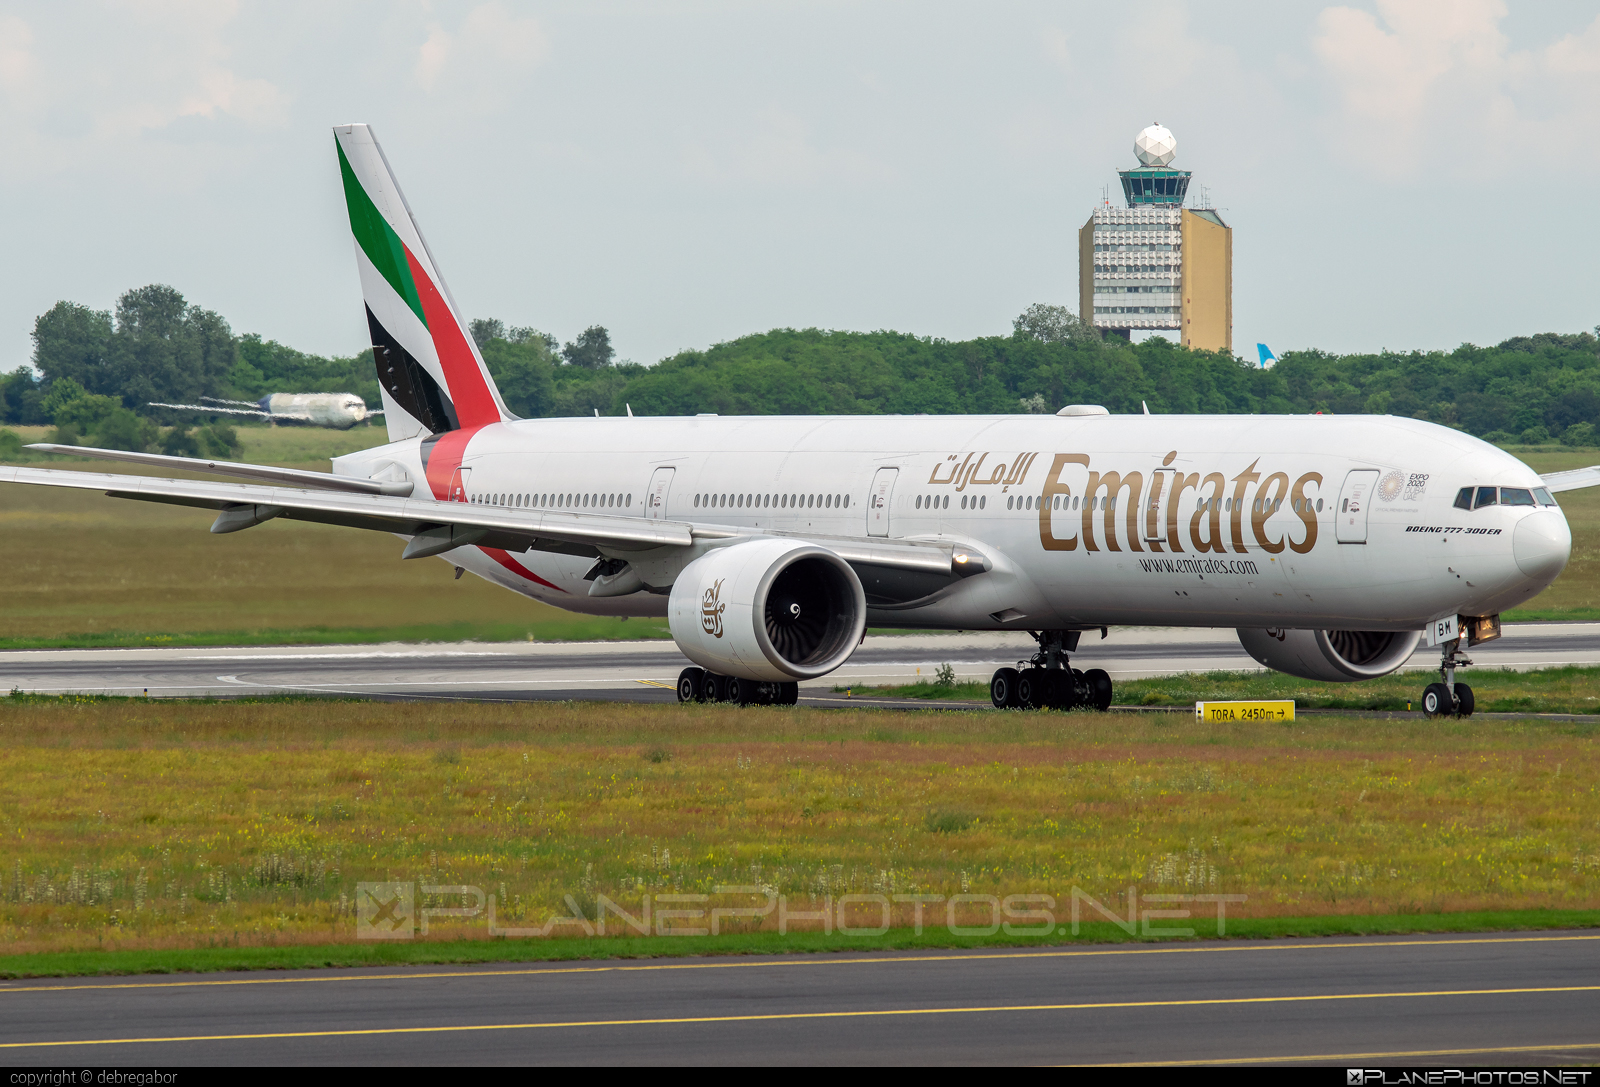 Boeing 777-300ER - A6-EBM operated by Emirates #b777 #b777er #boeing #boeing777 #emirates #tripleseven